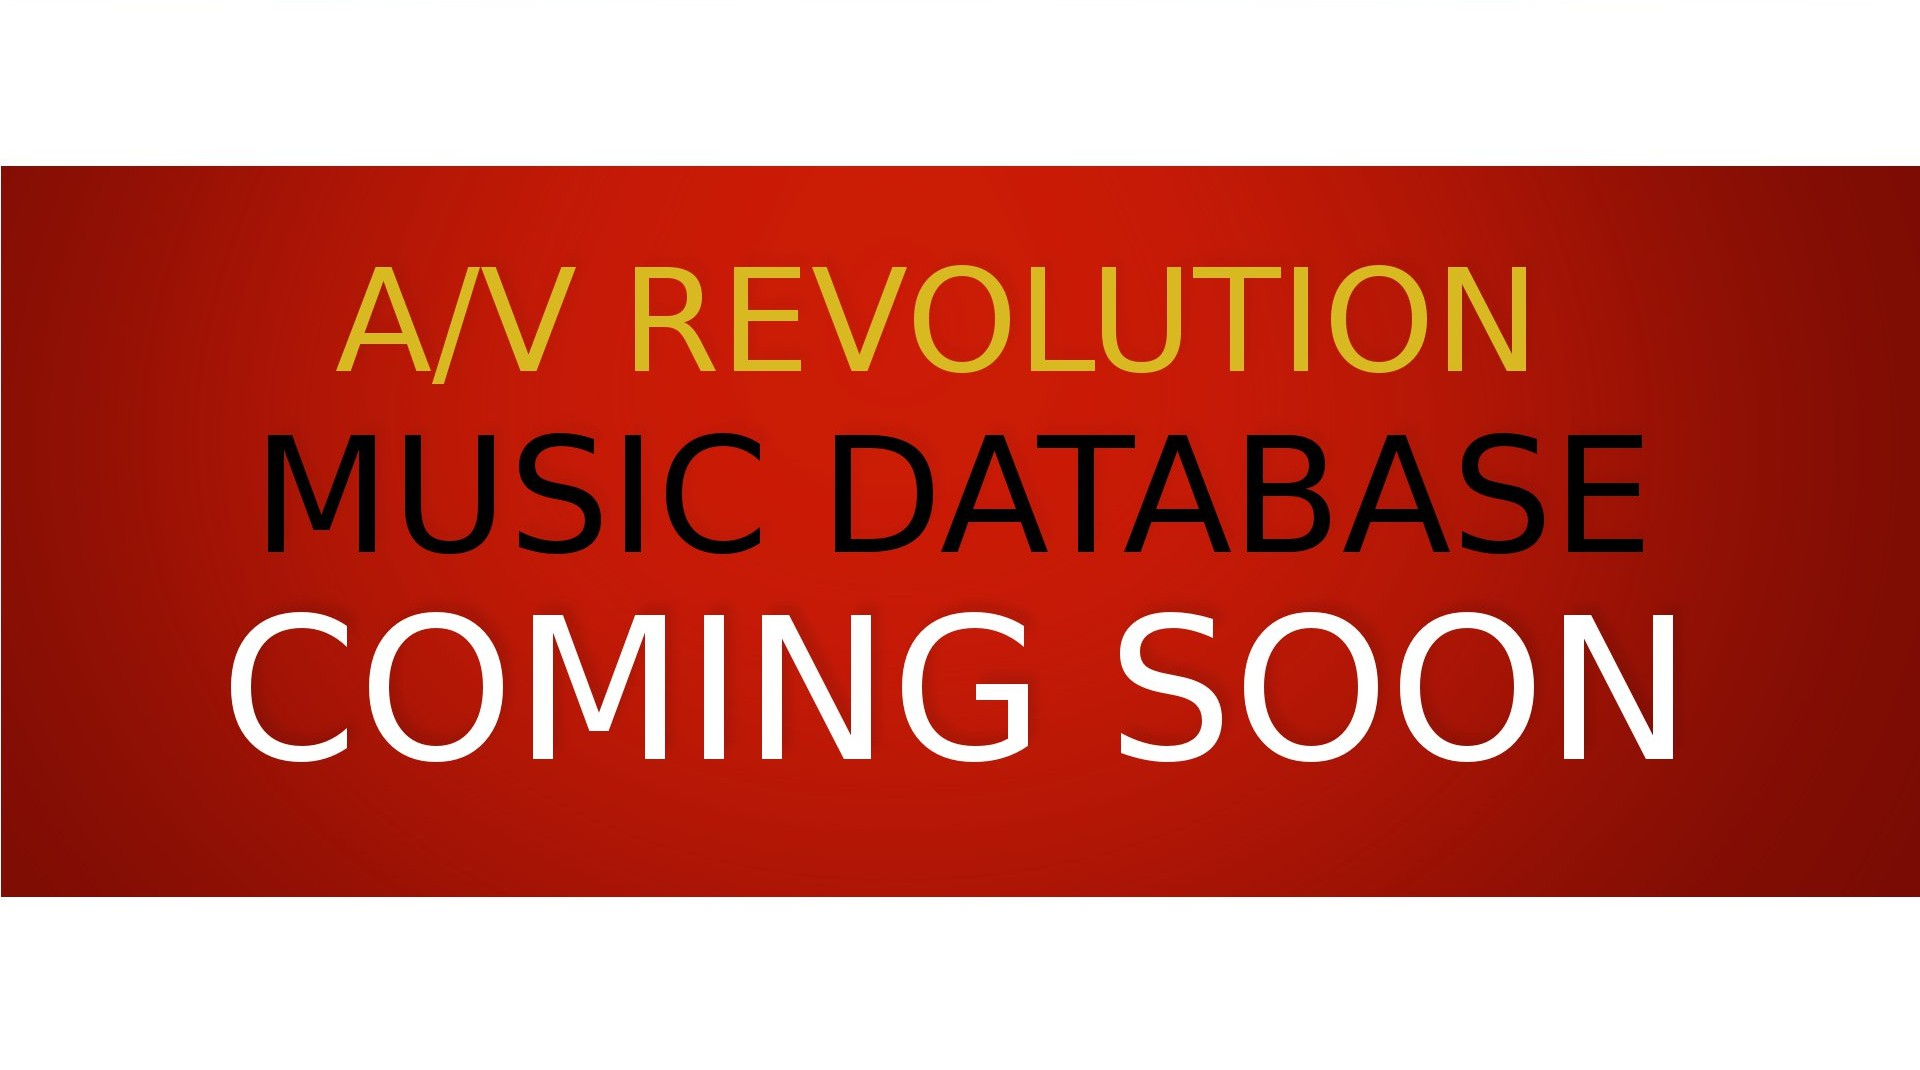 AVR Database Coming soon